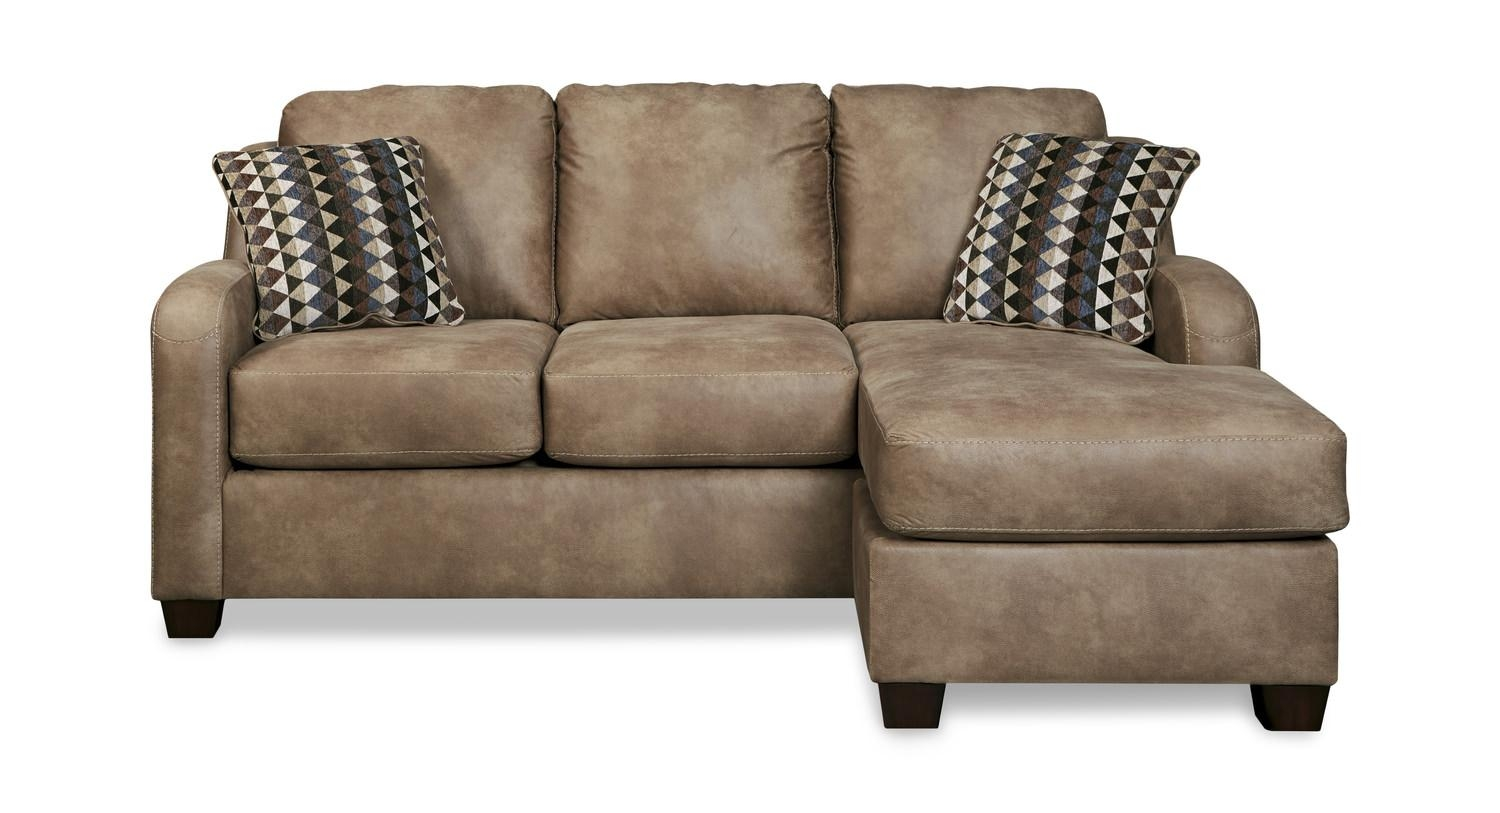 Living Room Furniture – Sofas & Couches – Hom Furniture Inside Camel Color Sofas (View 15 of 20)